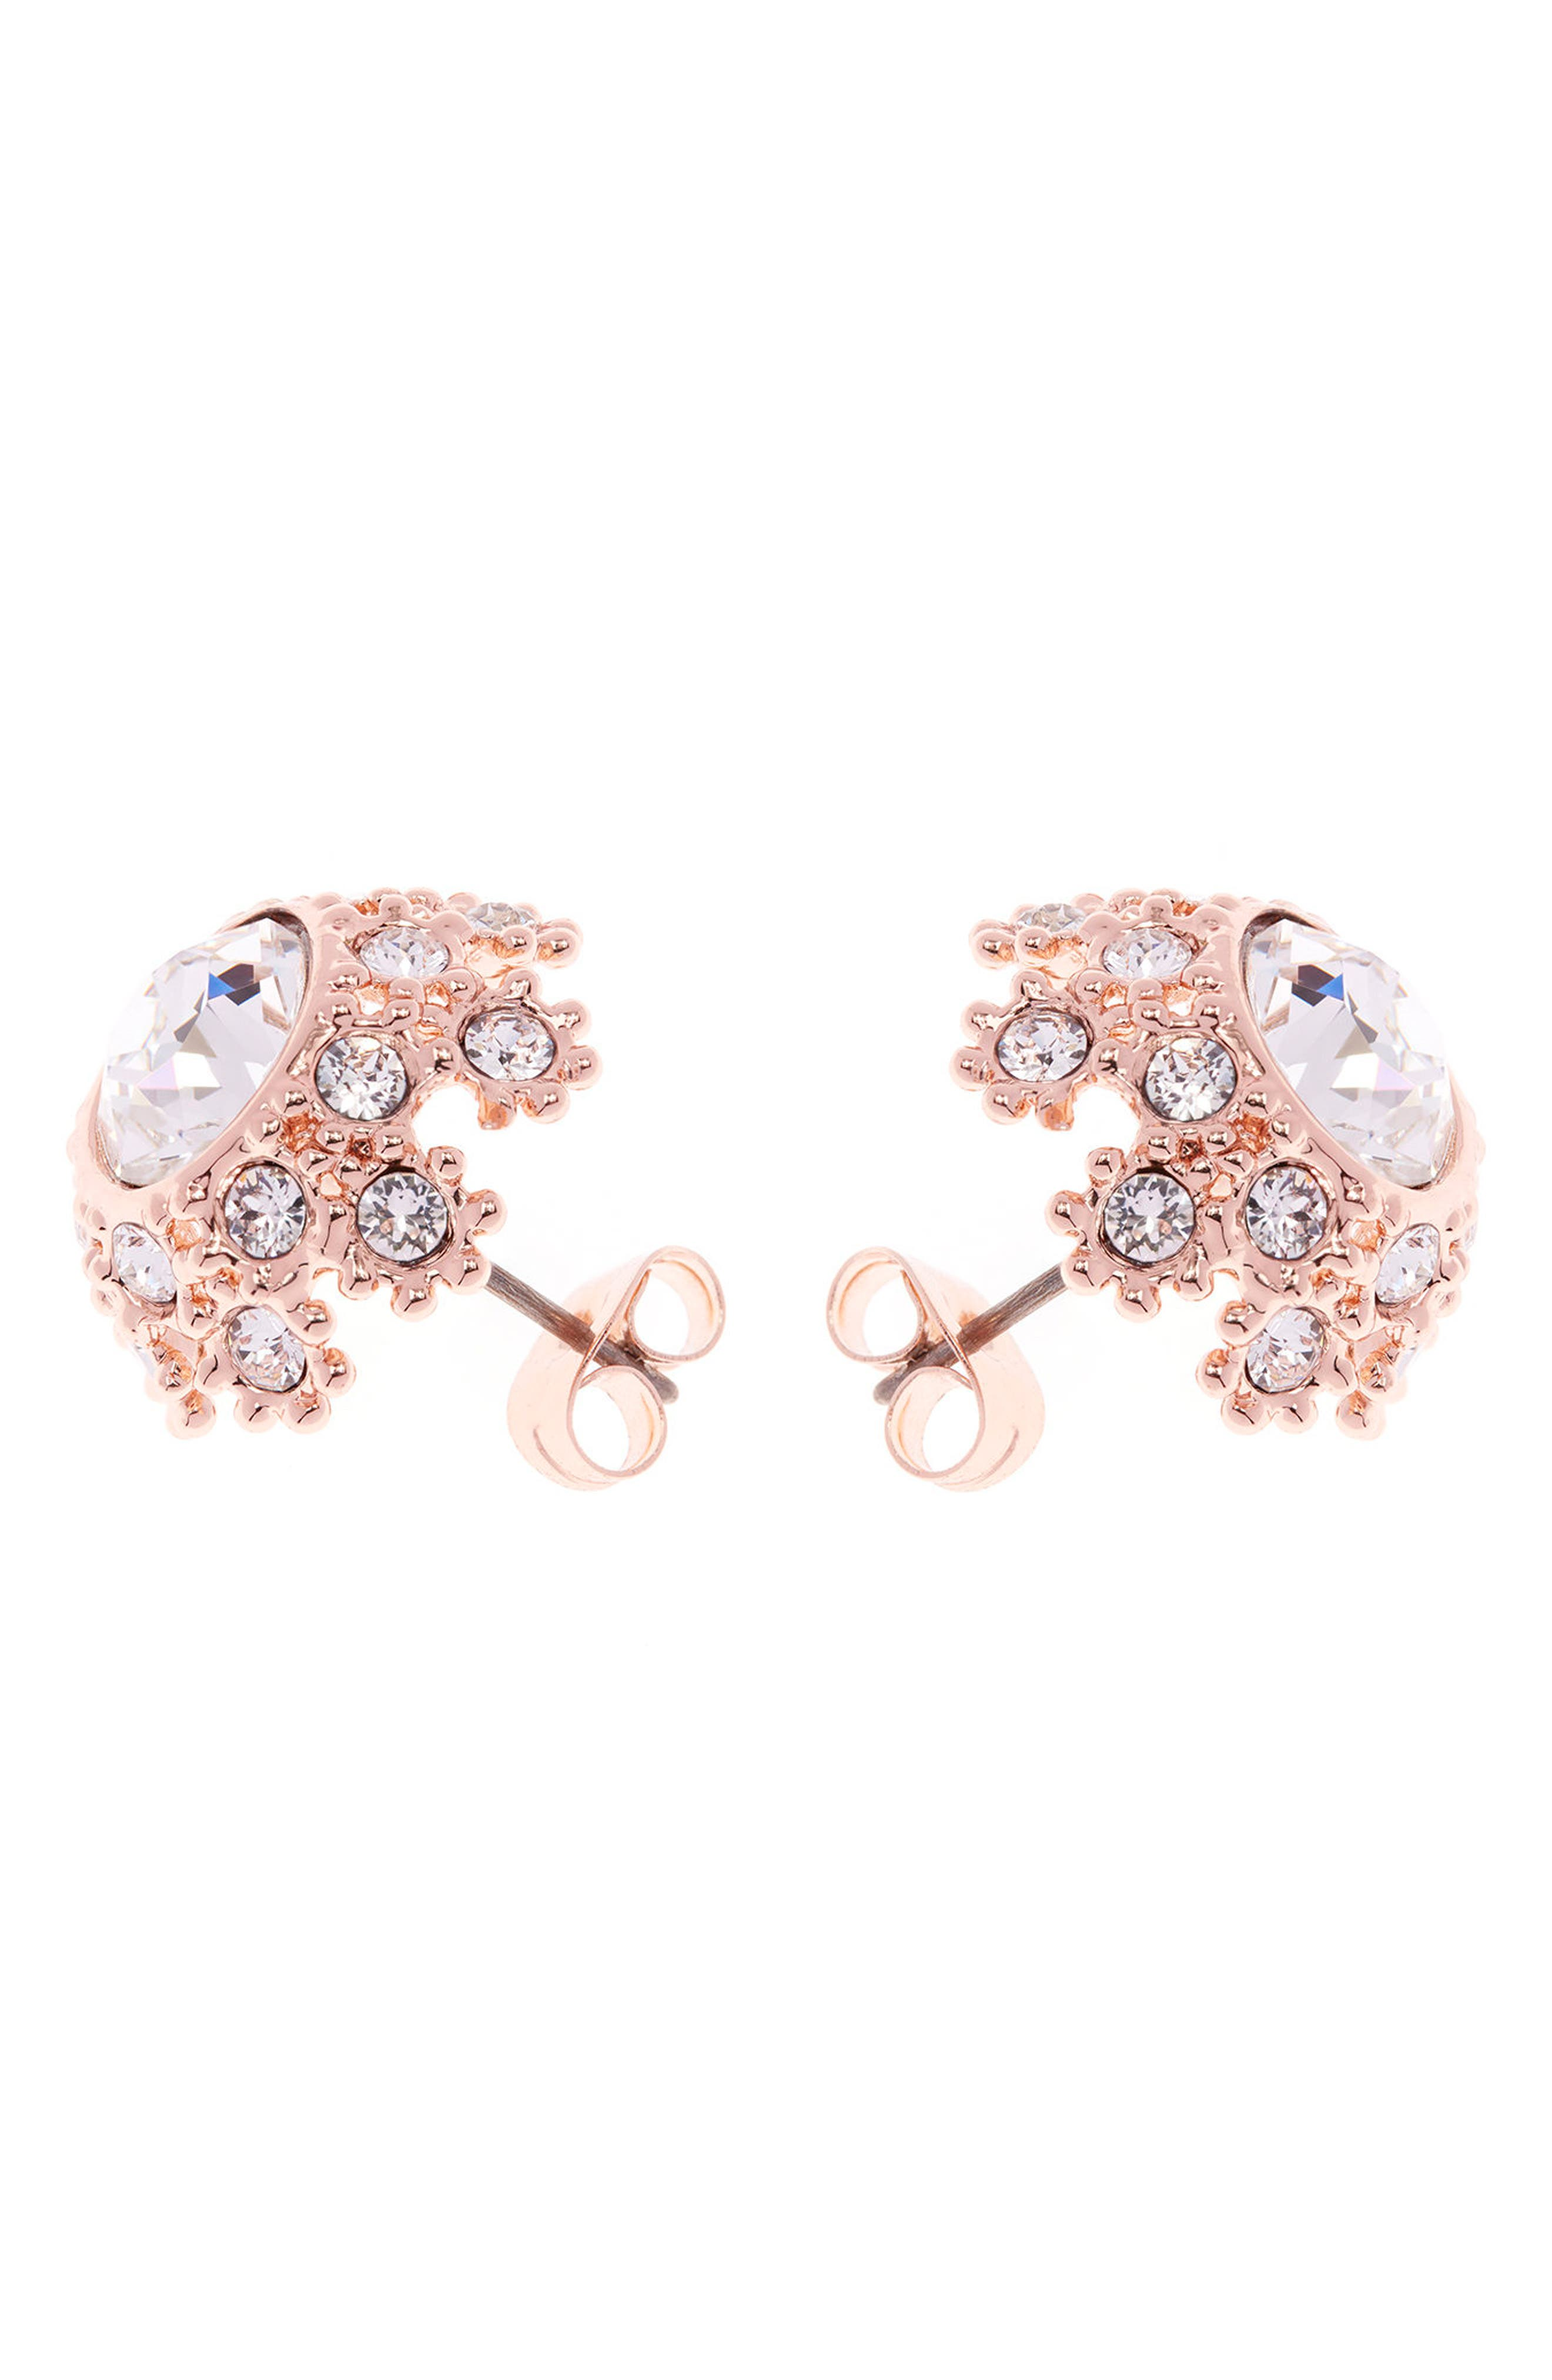 Crystal Daisy Lace Stud Earrings,                             Alternate thumbnail 2, color,                             Pink